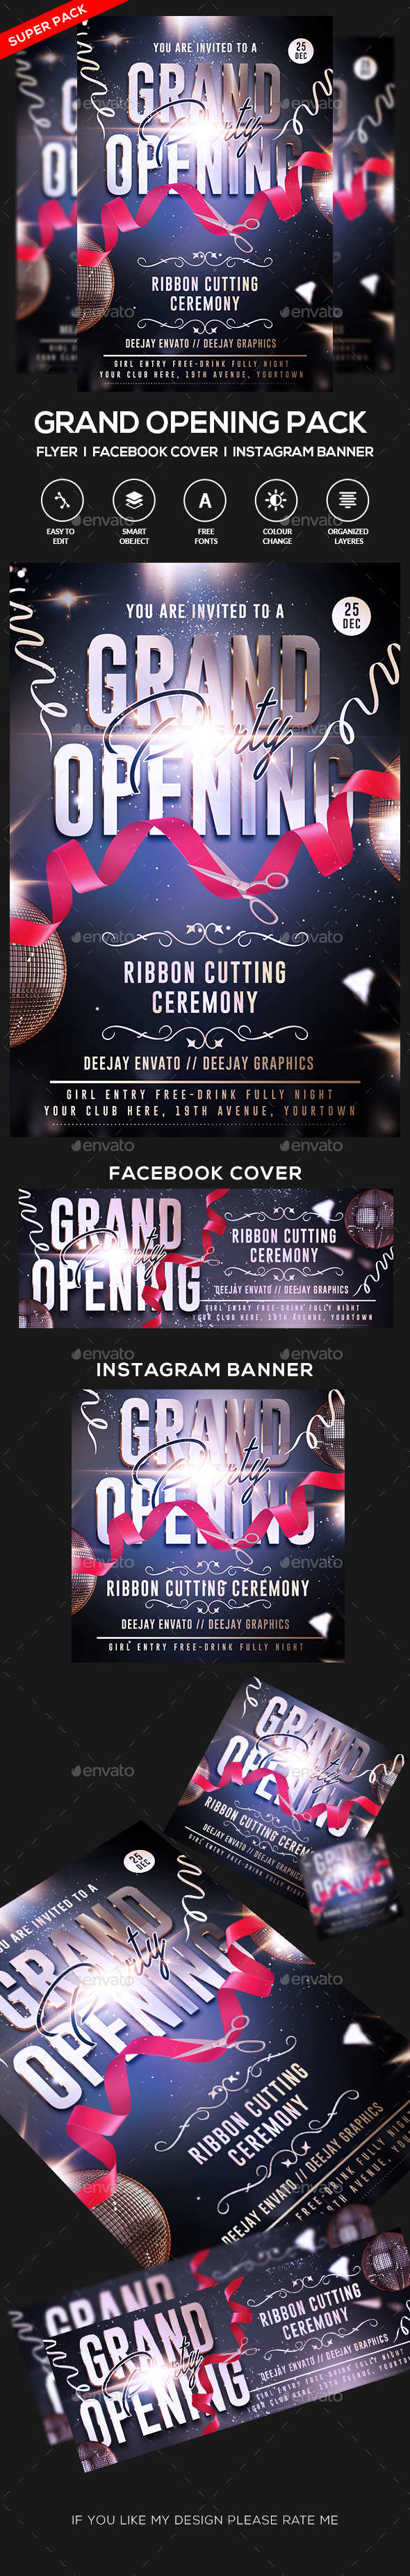 Grand Opening Pack Flyer with Facebook cover and Instagram Banner - Clubs & Parties Events